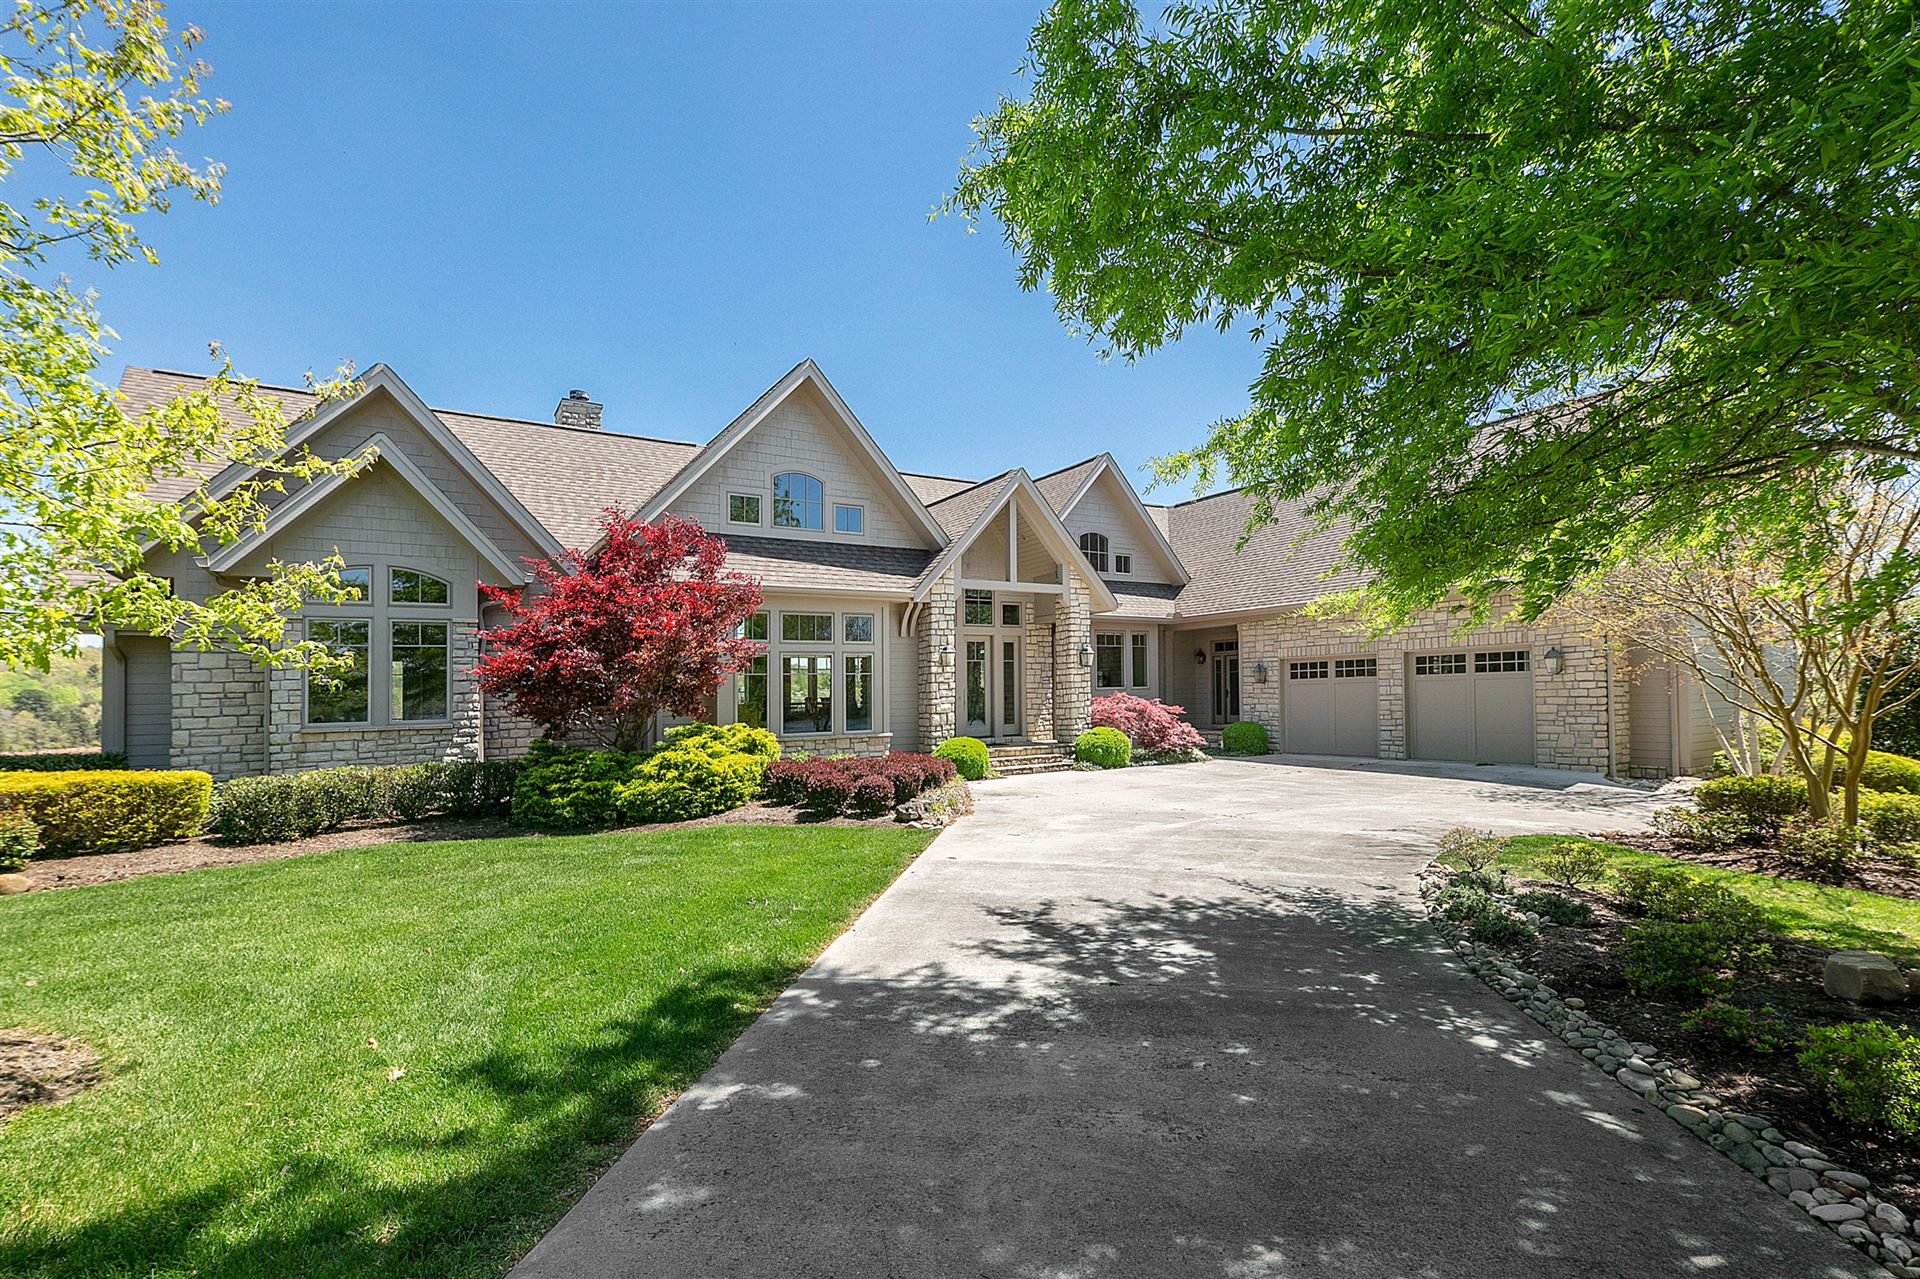 Photo for 839 Crown Pointe Rd, LaFollette, TN 37766 (MLS # 1150285)